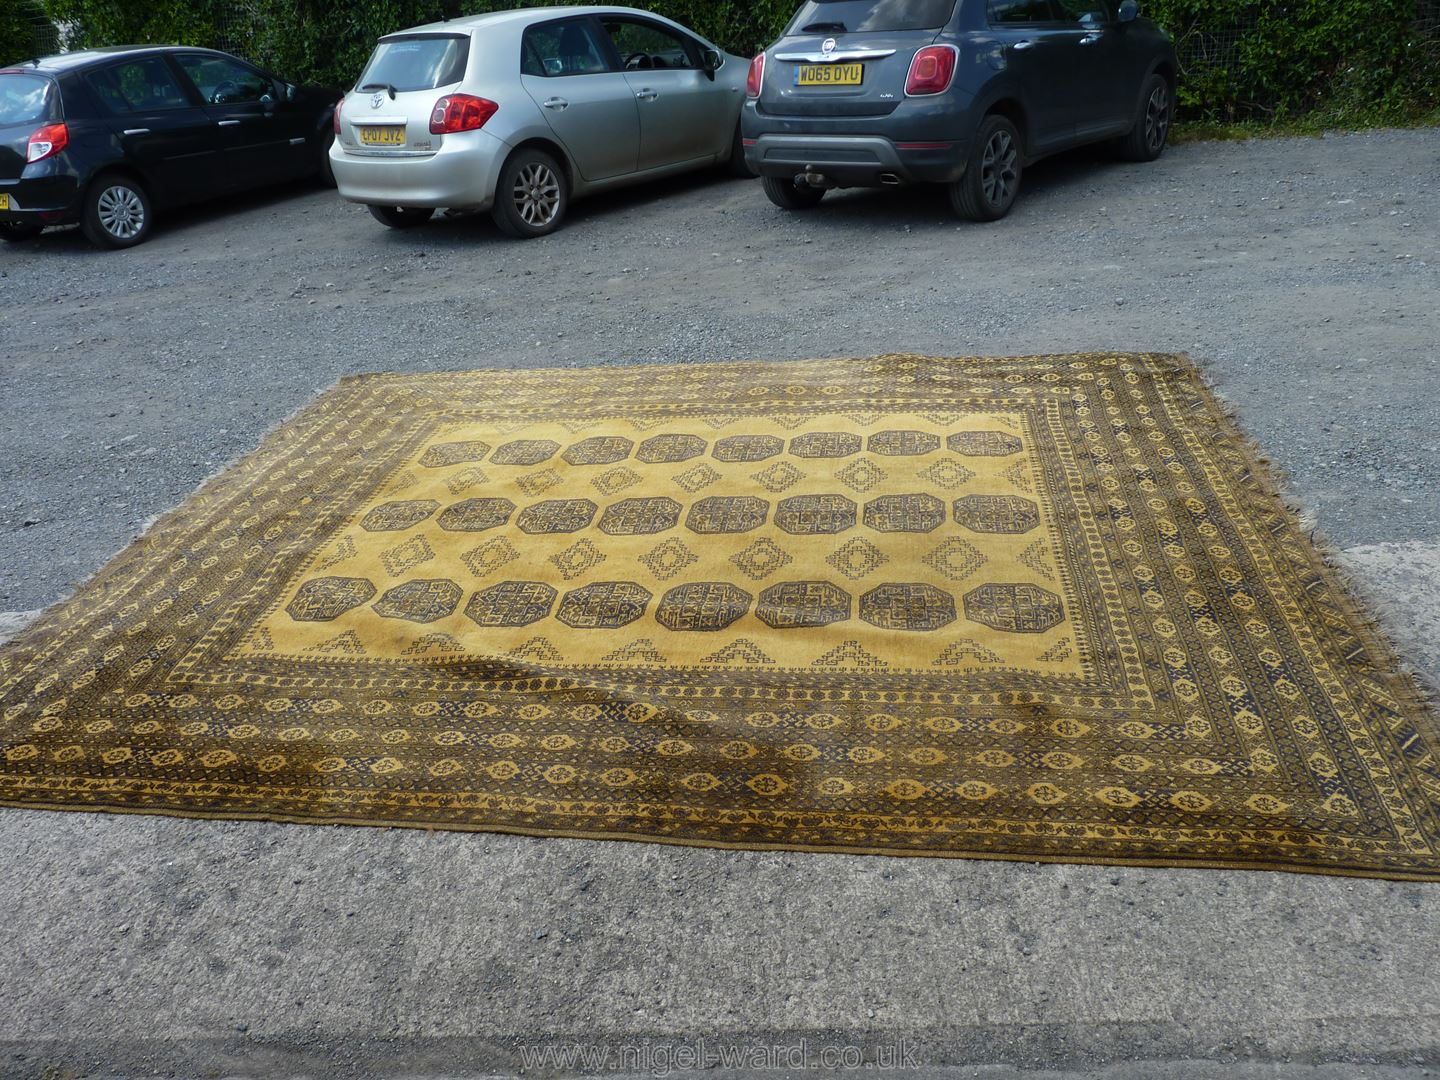 A large bordered, patterned and fringed Rug, gold ground with black geometric pattern, - Image 2 of 3